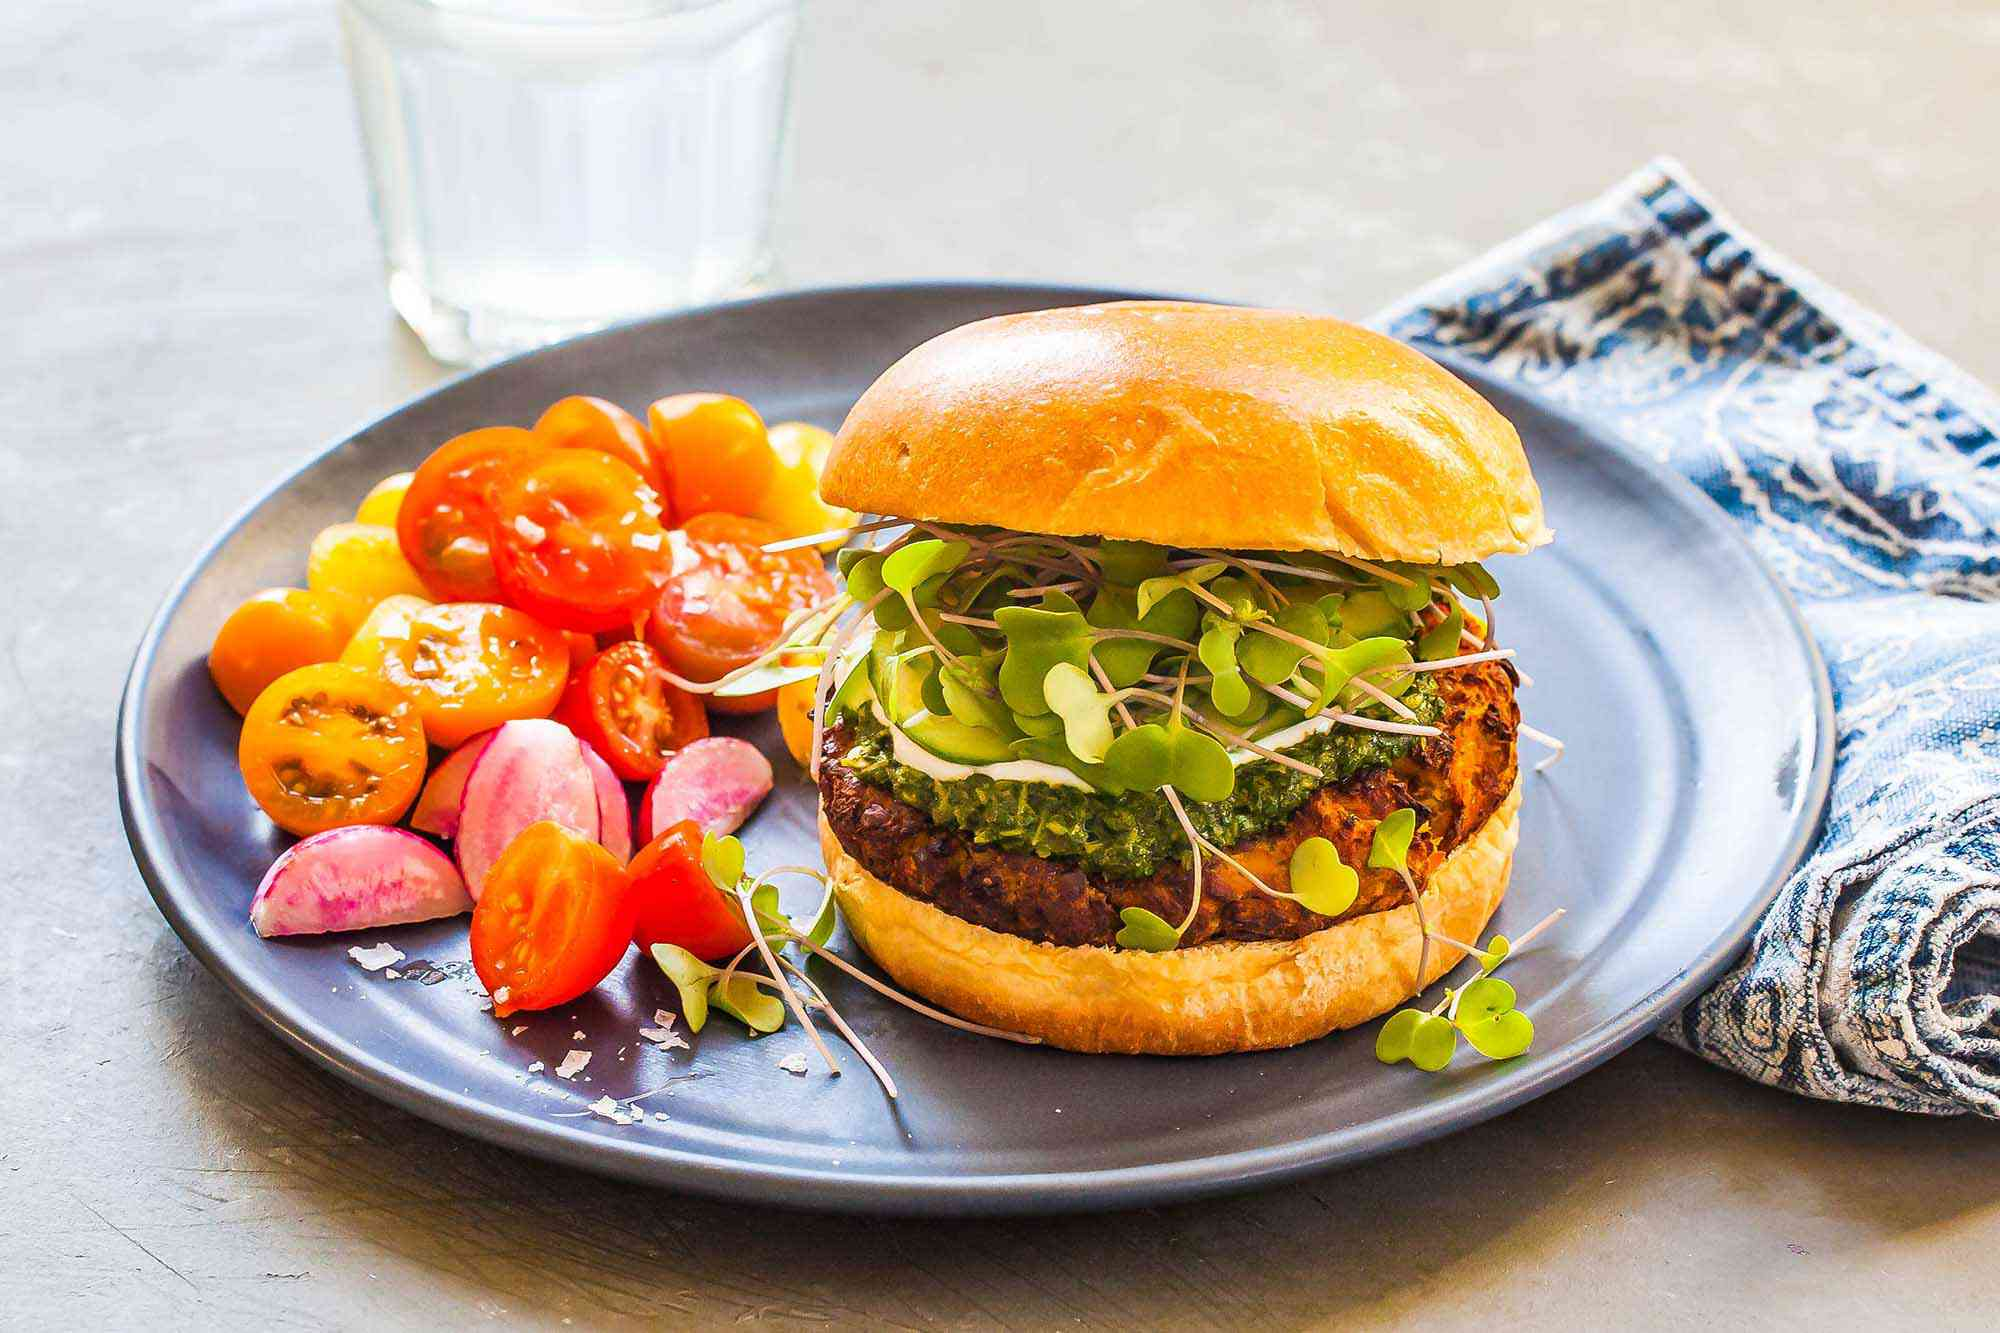 A blue plate has an indian spiced lentil burger set next to halved grape tomatoes. The lentil patty, chutney and sprouts are visible inside the bun. A blue patterned napkin is folded next to the plate.